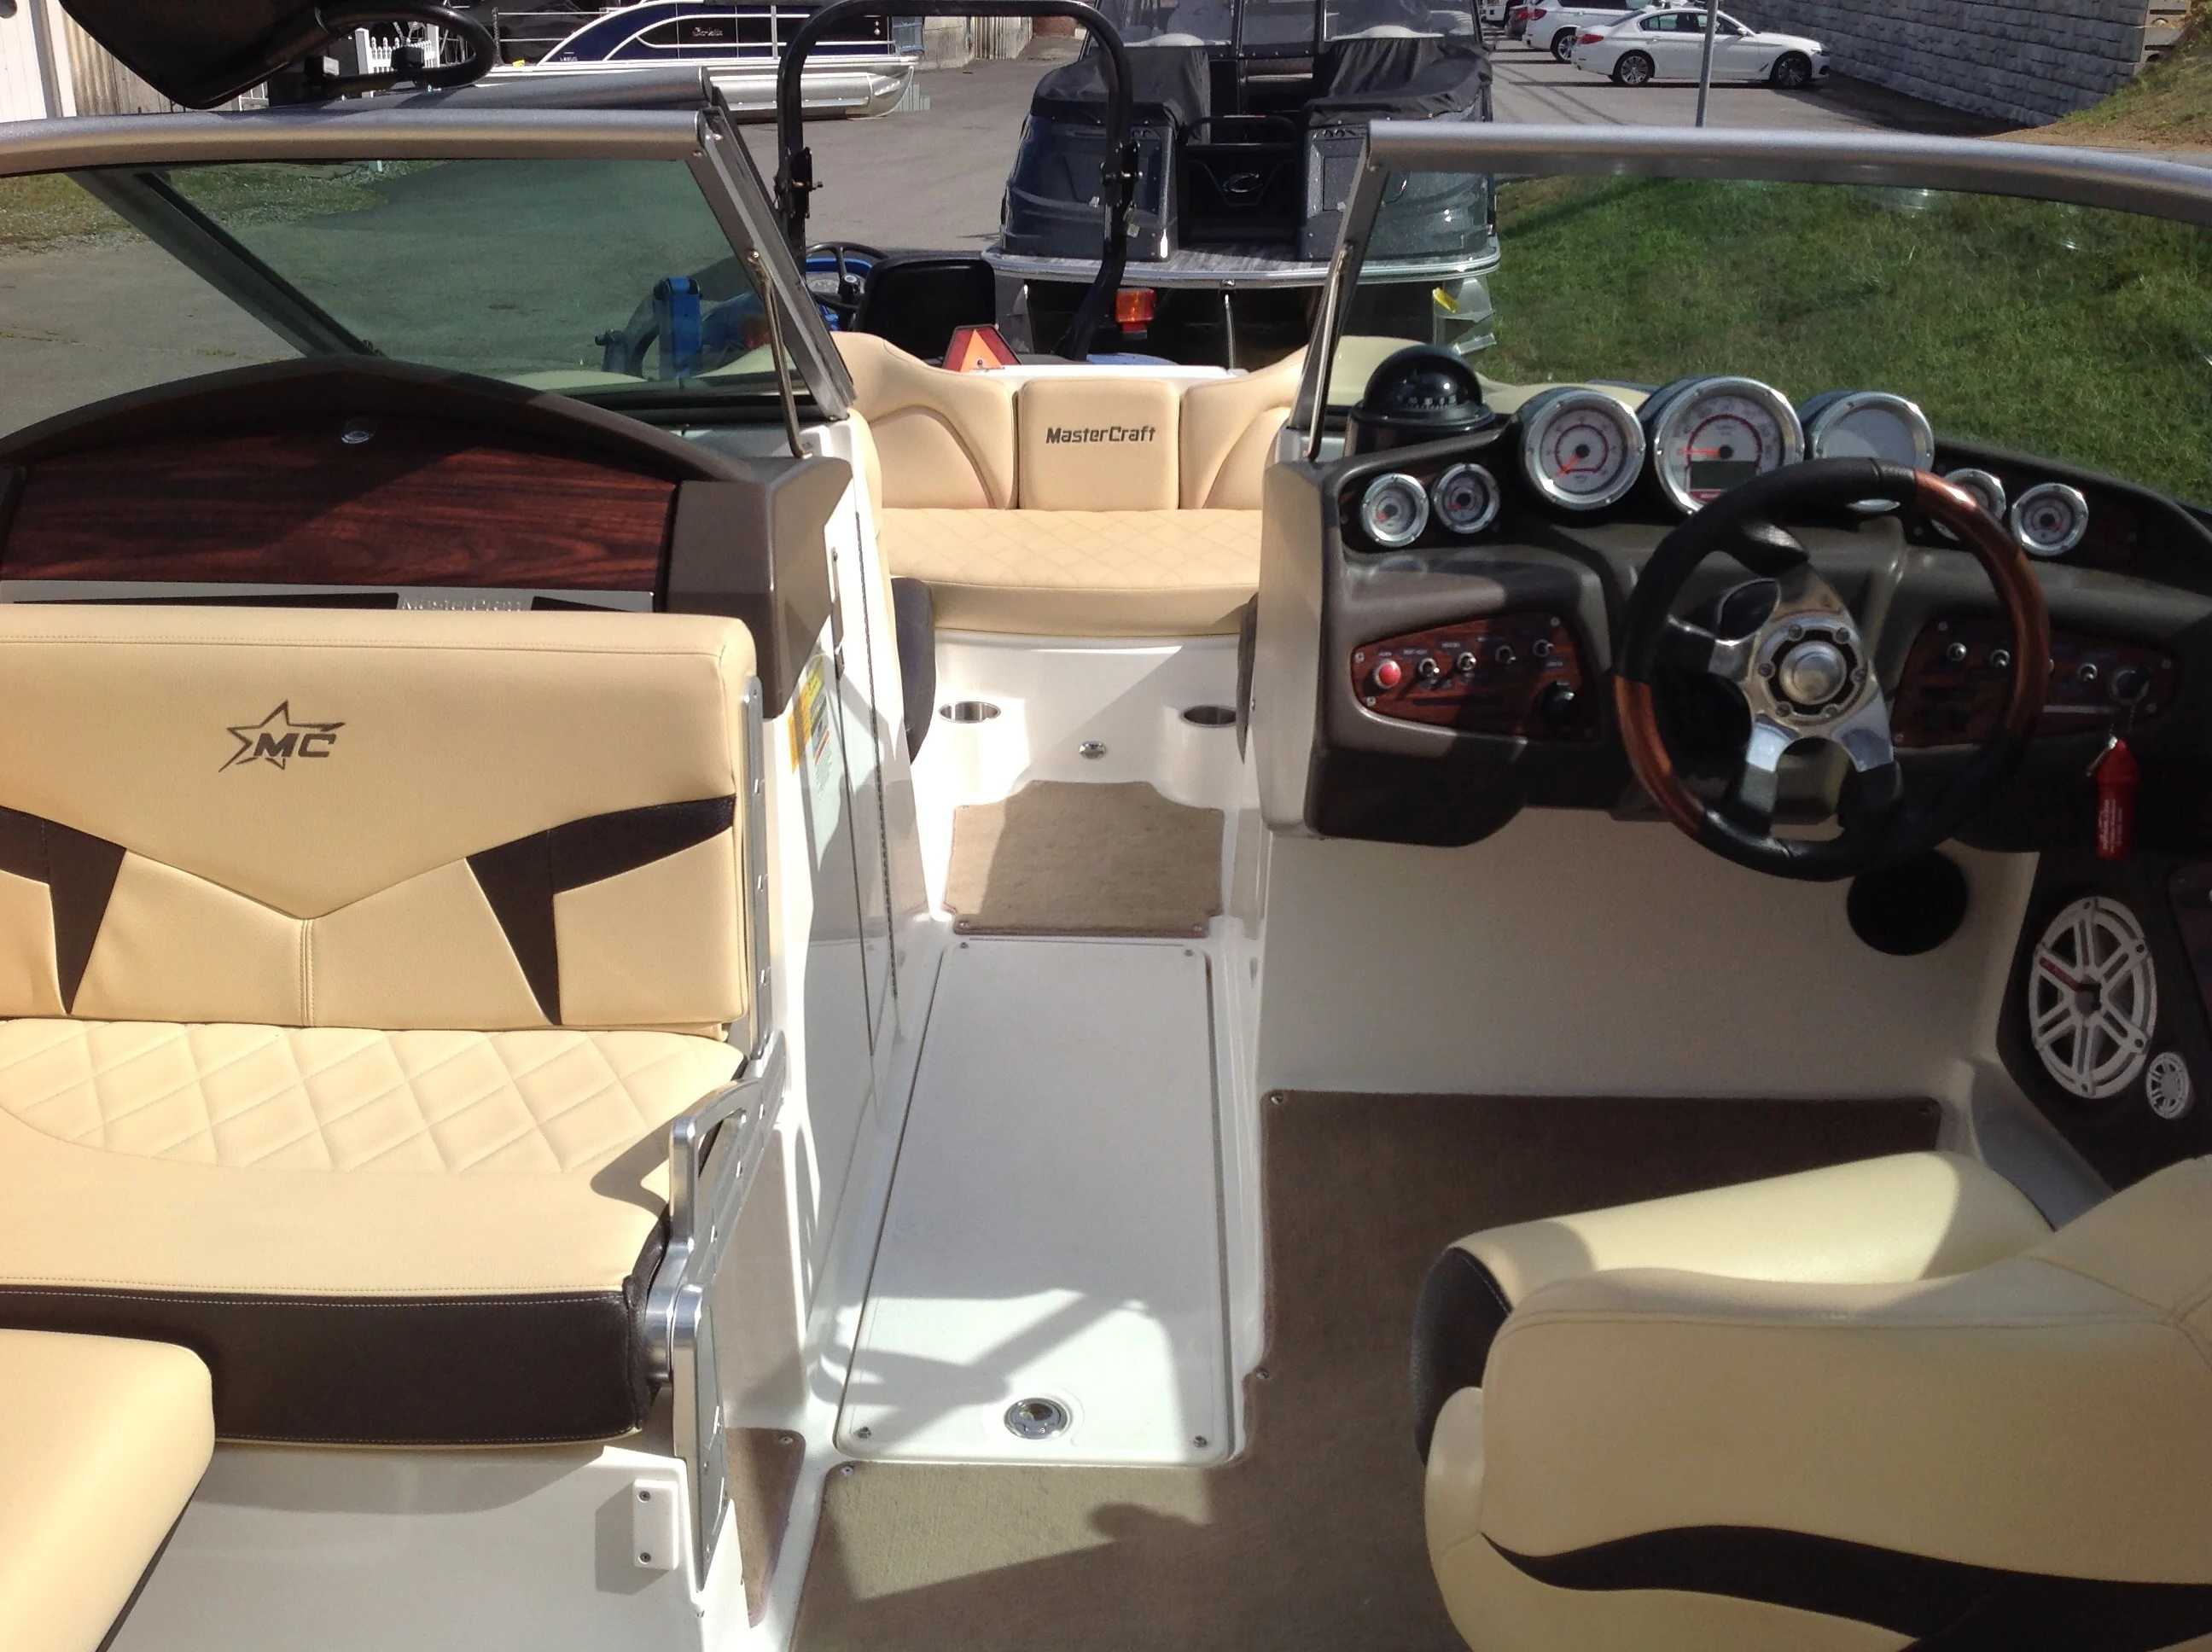 2010 Mastercraft boat for sale, model of the boat is Maristar 235 & Image # 12 of 16